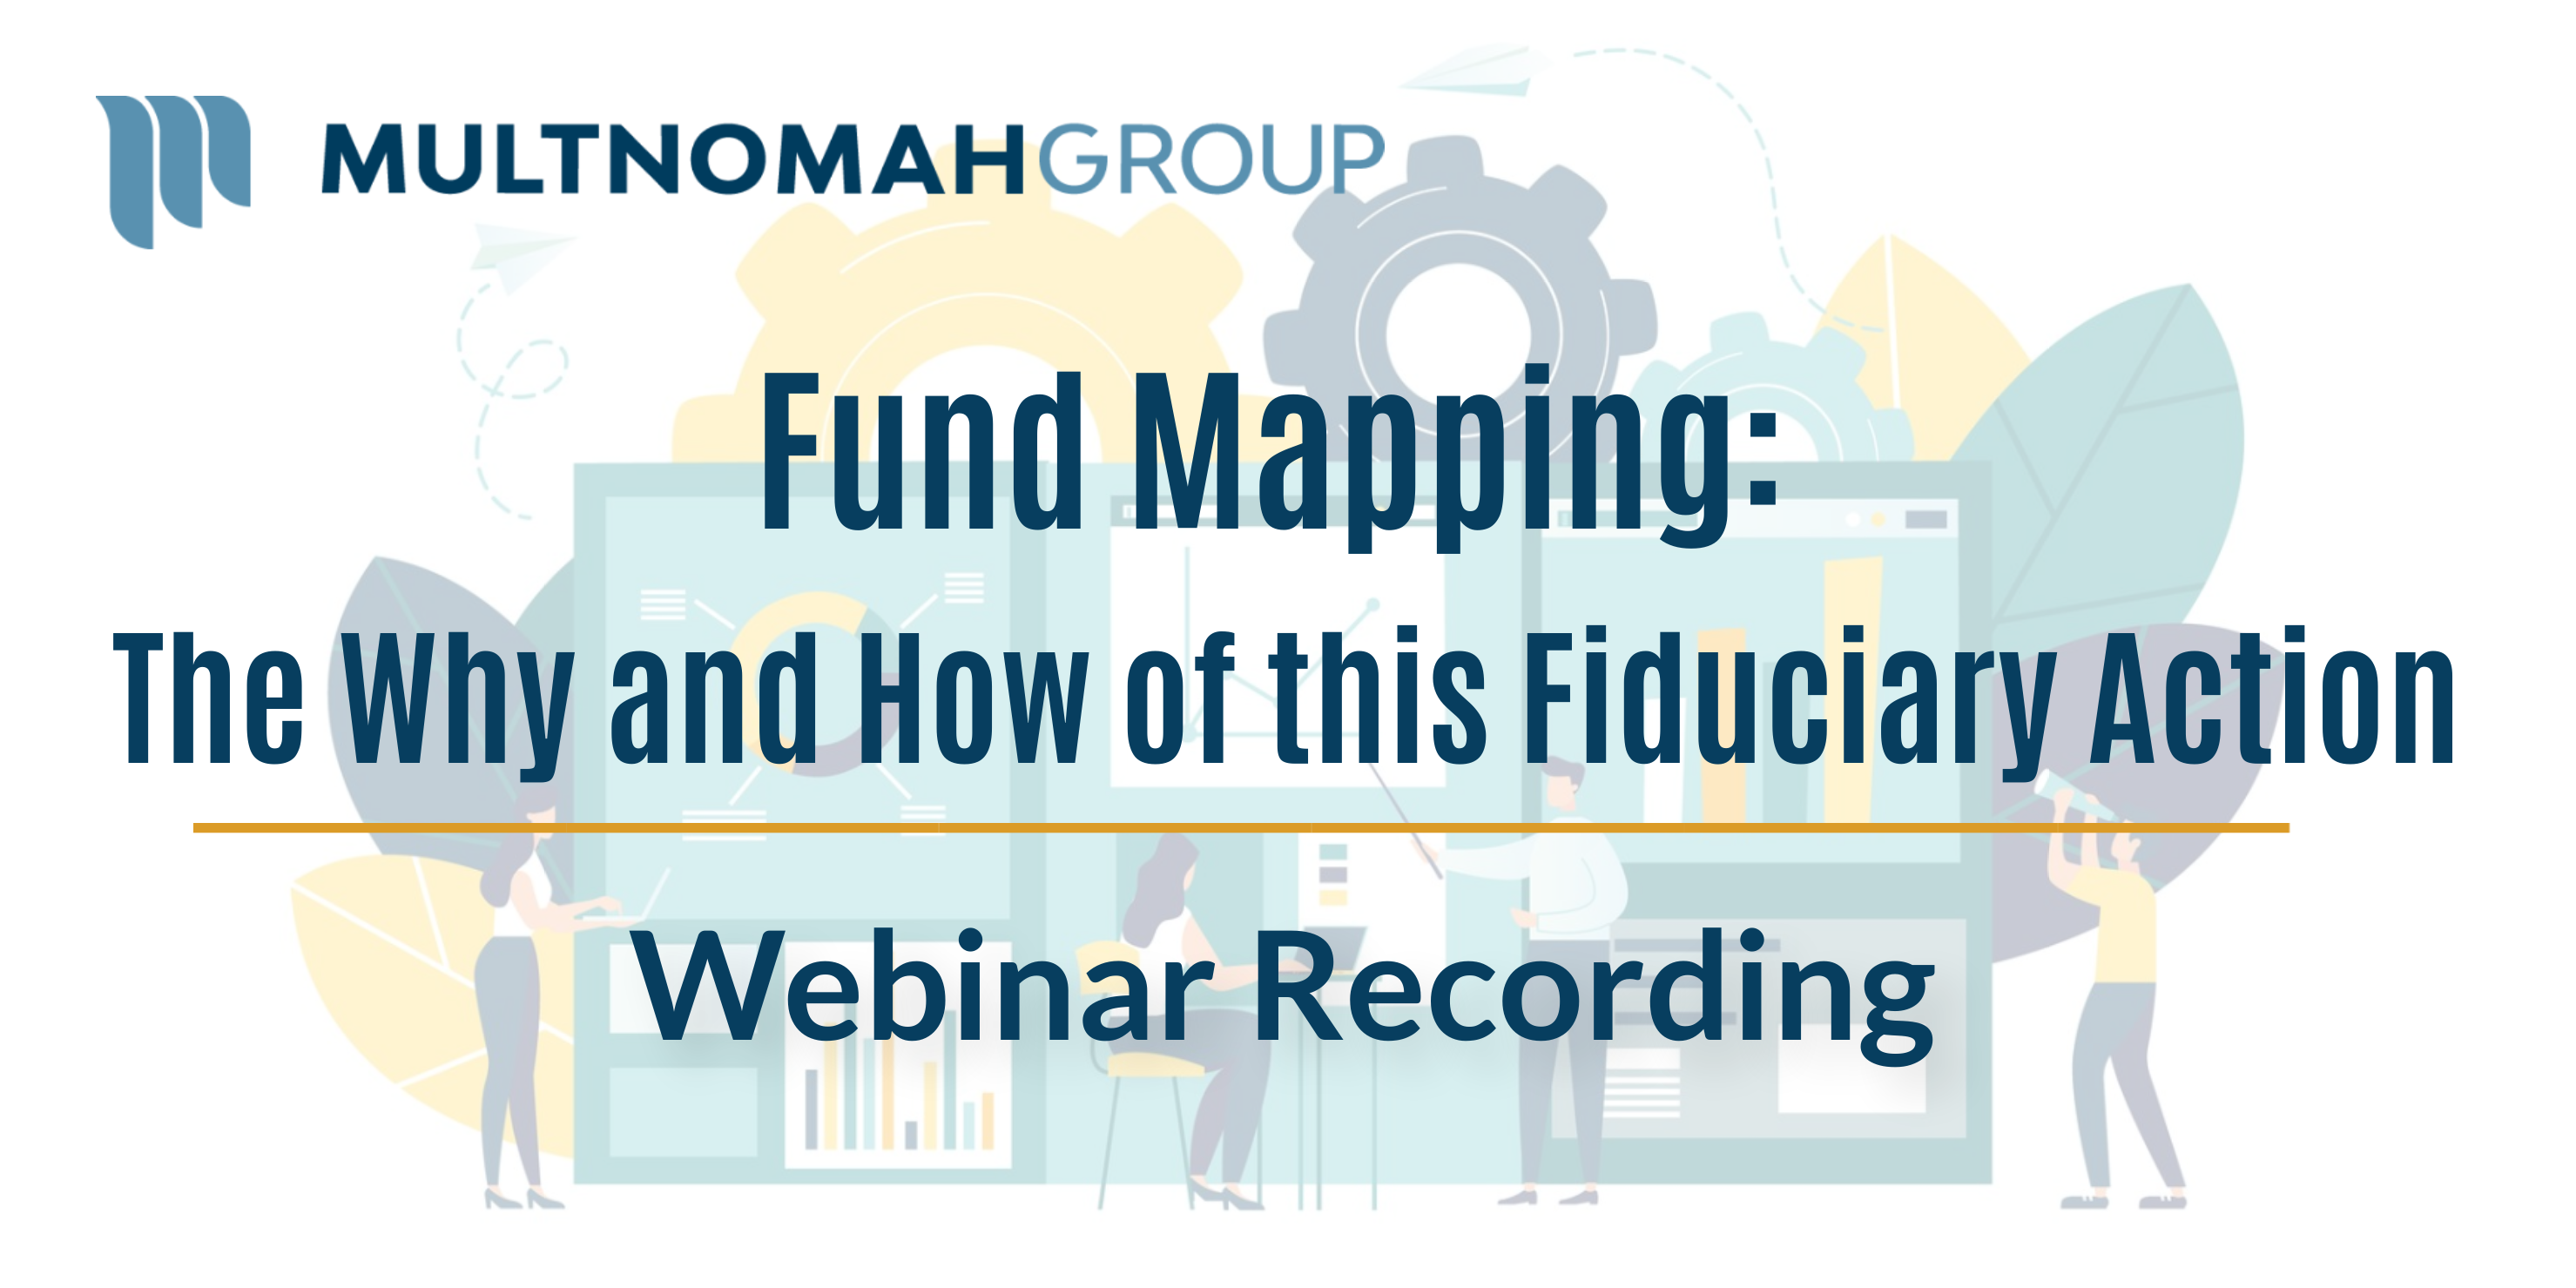 Webinar Recording: Fund Mapping - The Why and How of this Fiduciary Action